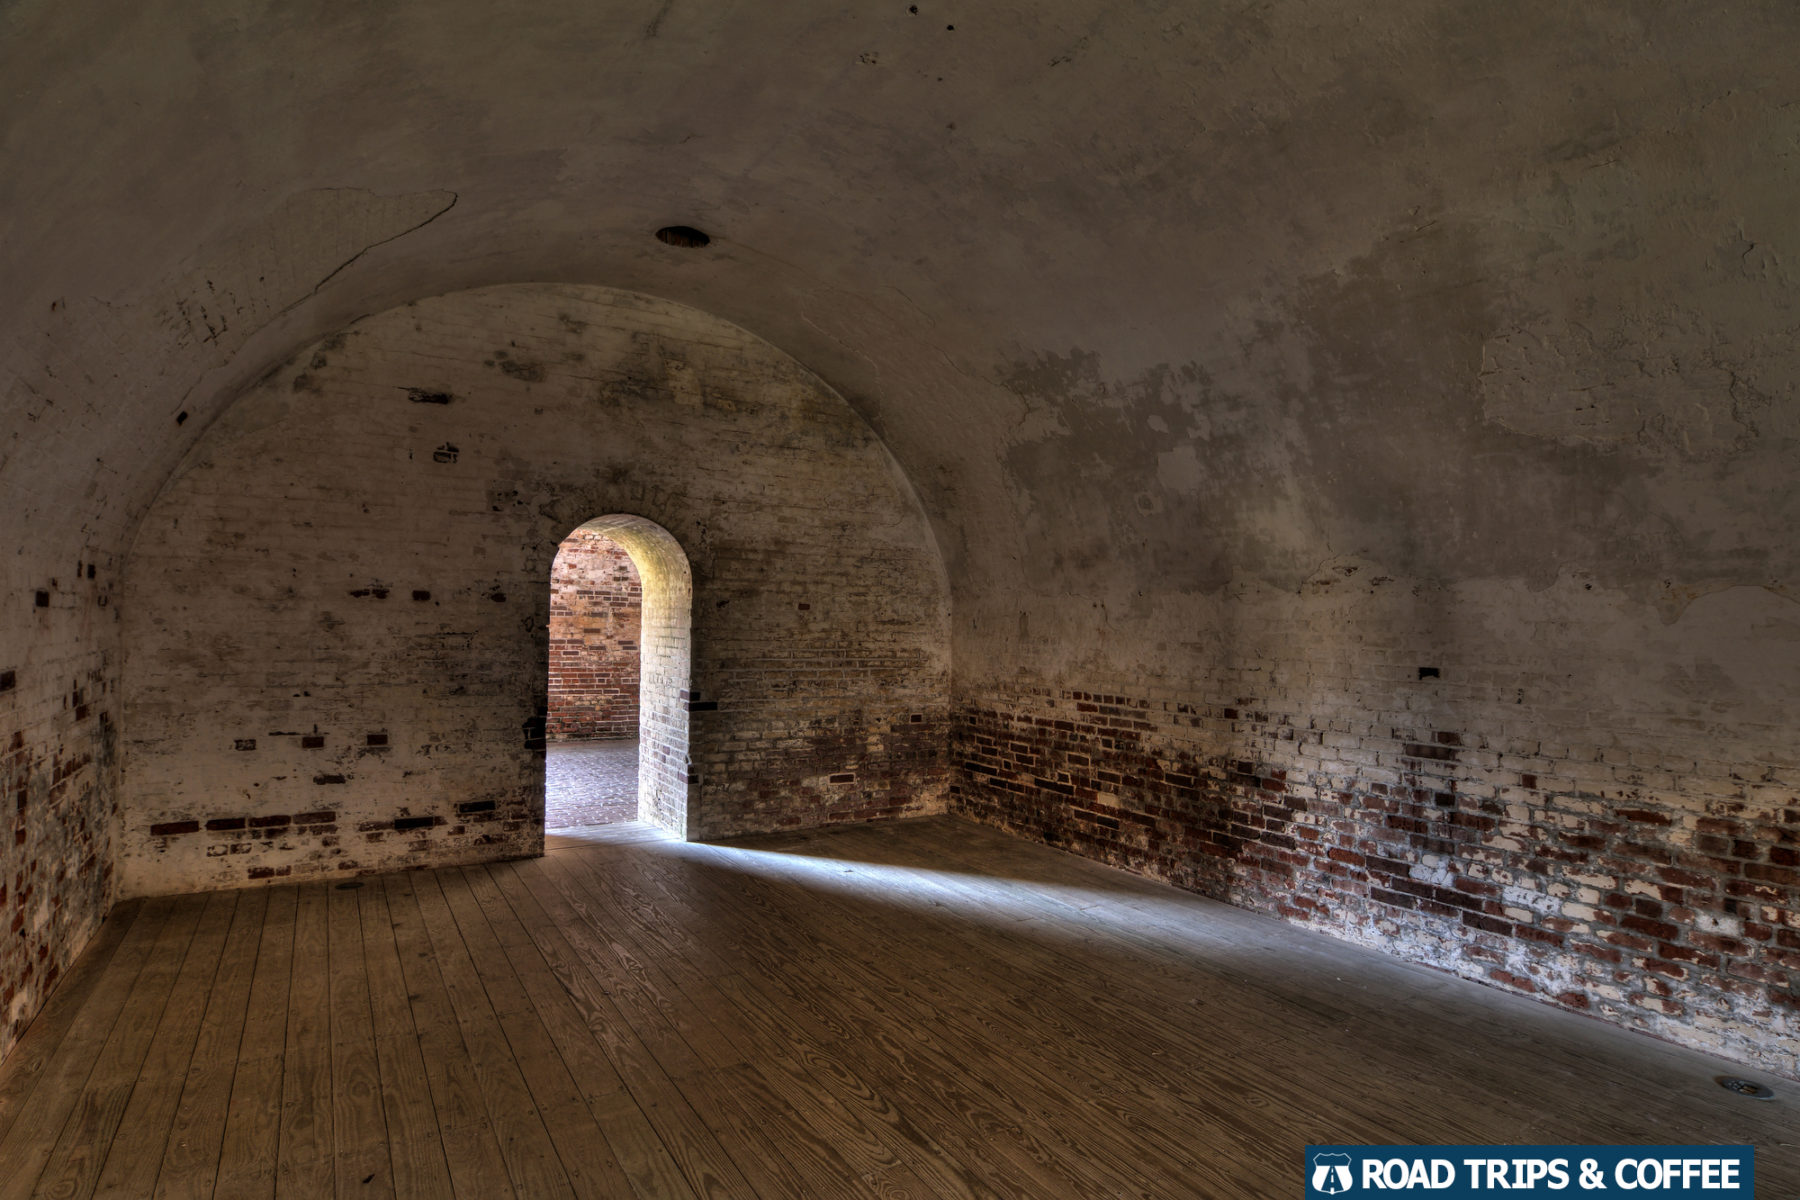 A room without windows deep inside Fort Macon State Park in Atlantic Beach, North Carolina